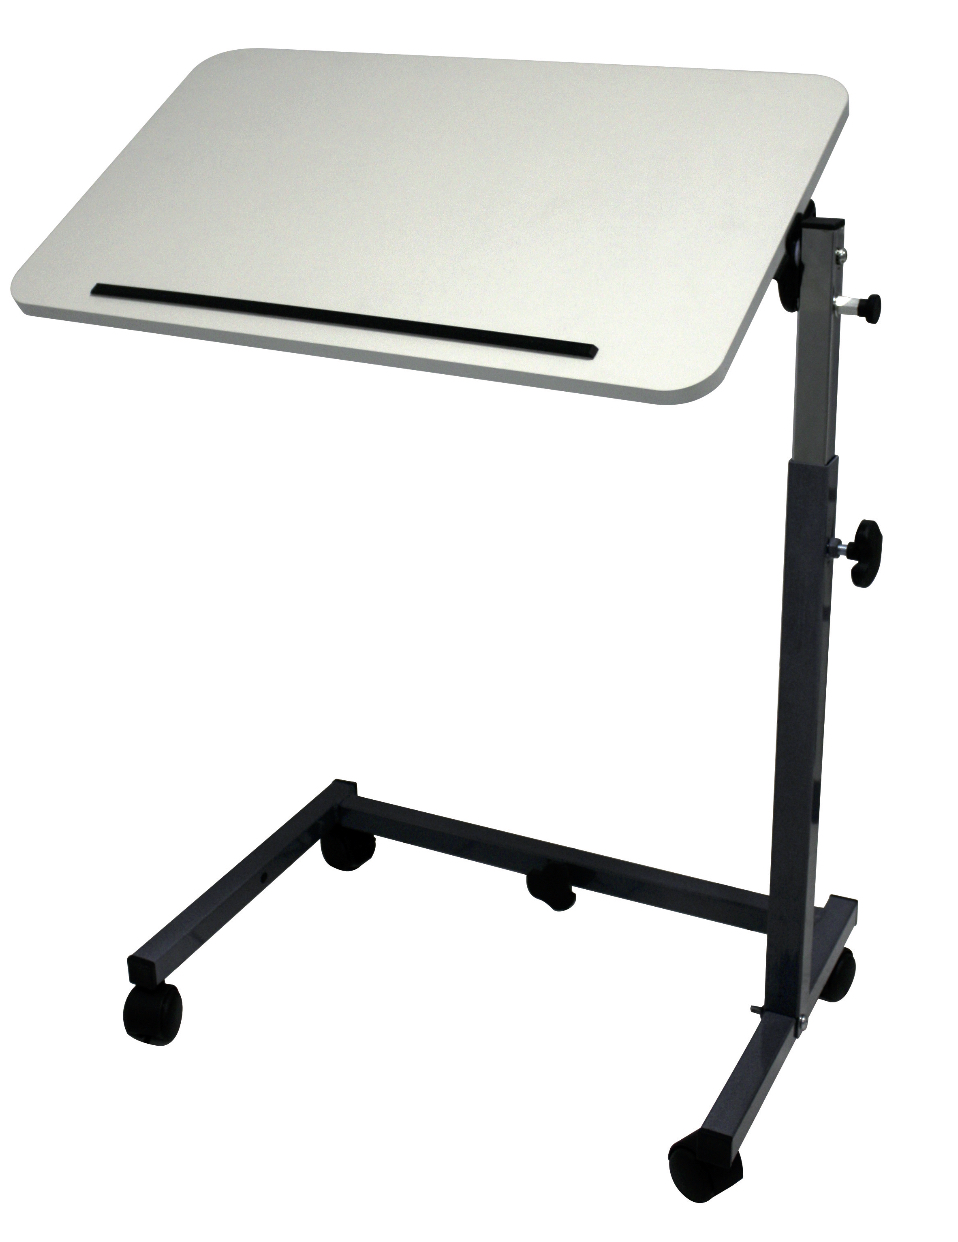 Avon 2.0 Cantilever Table - Living made easy